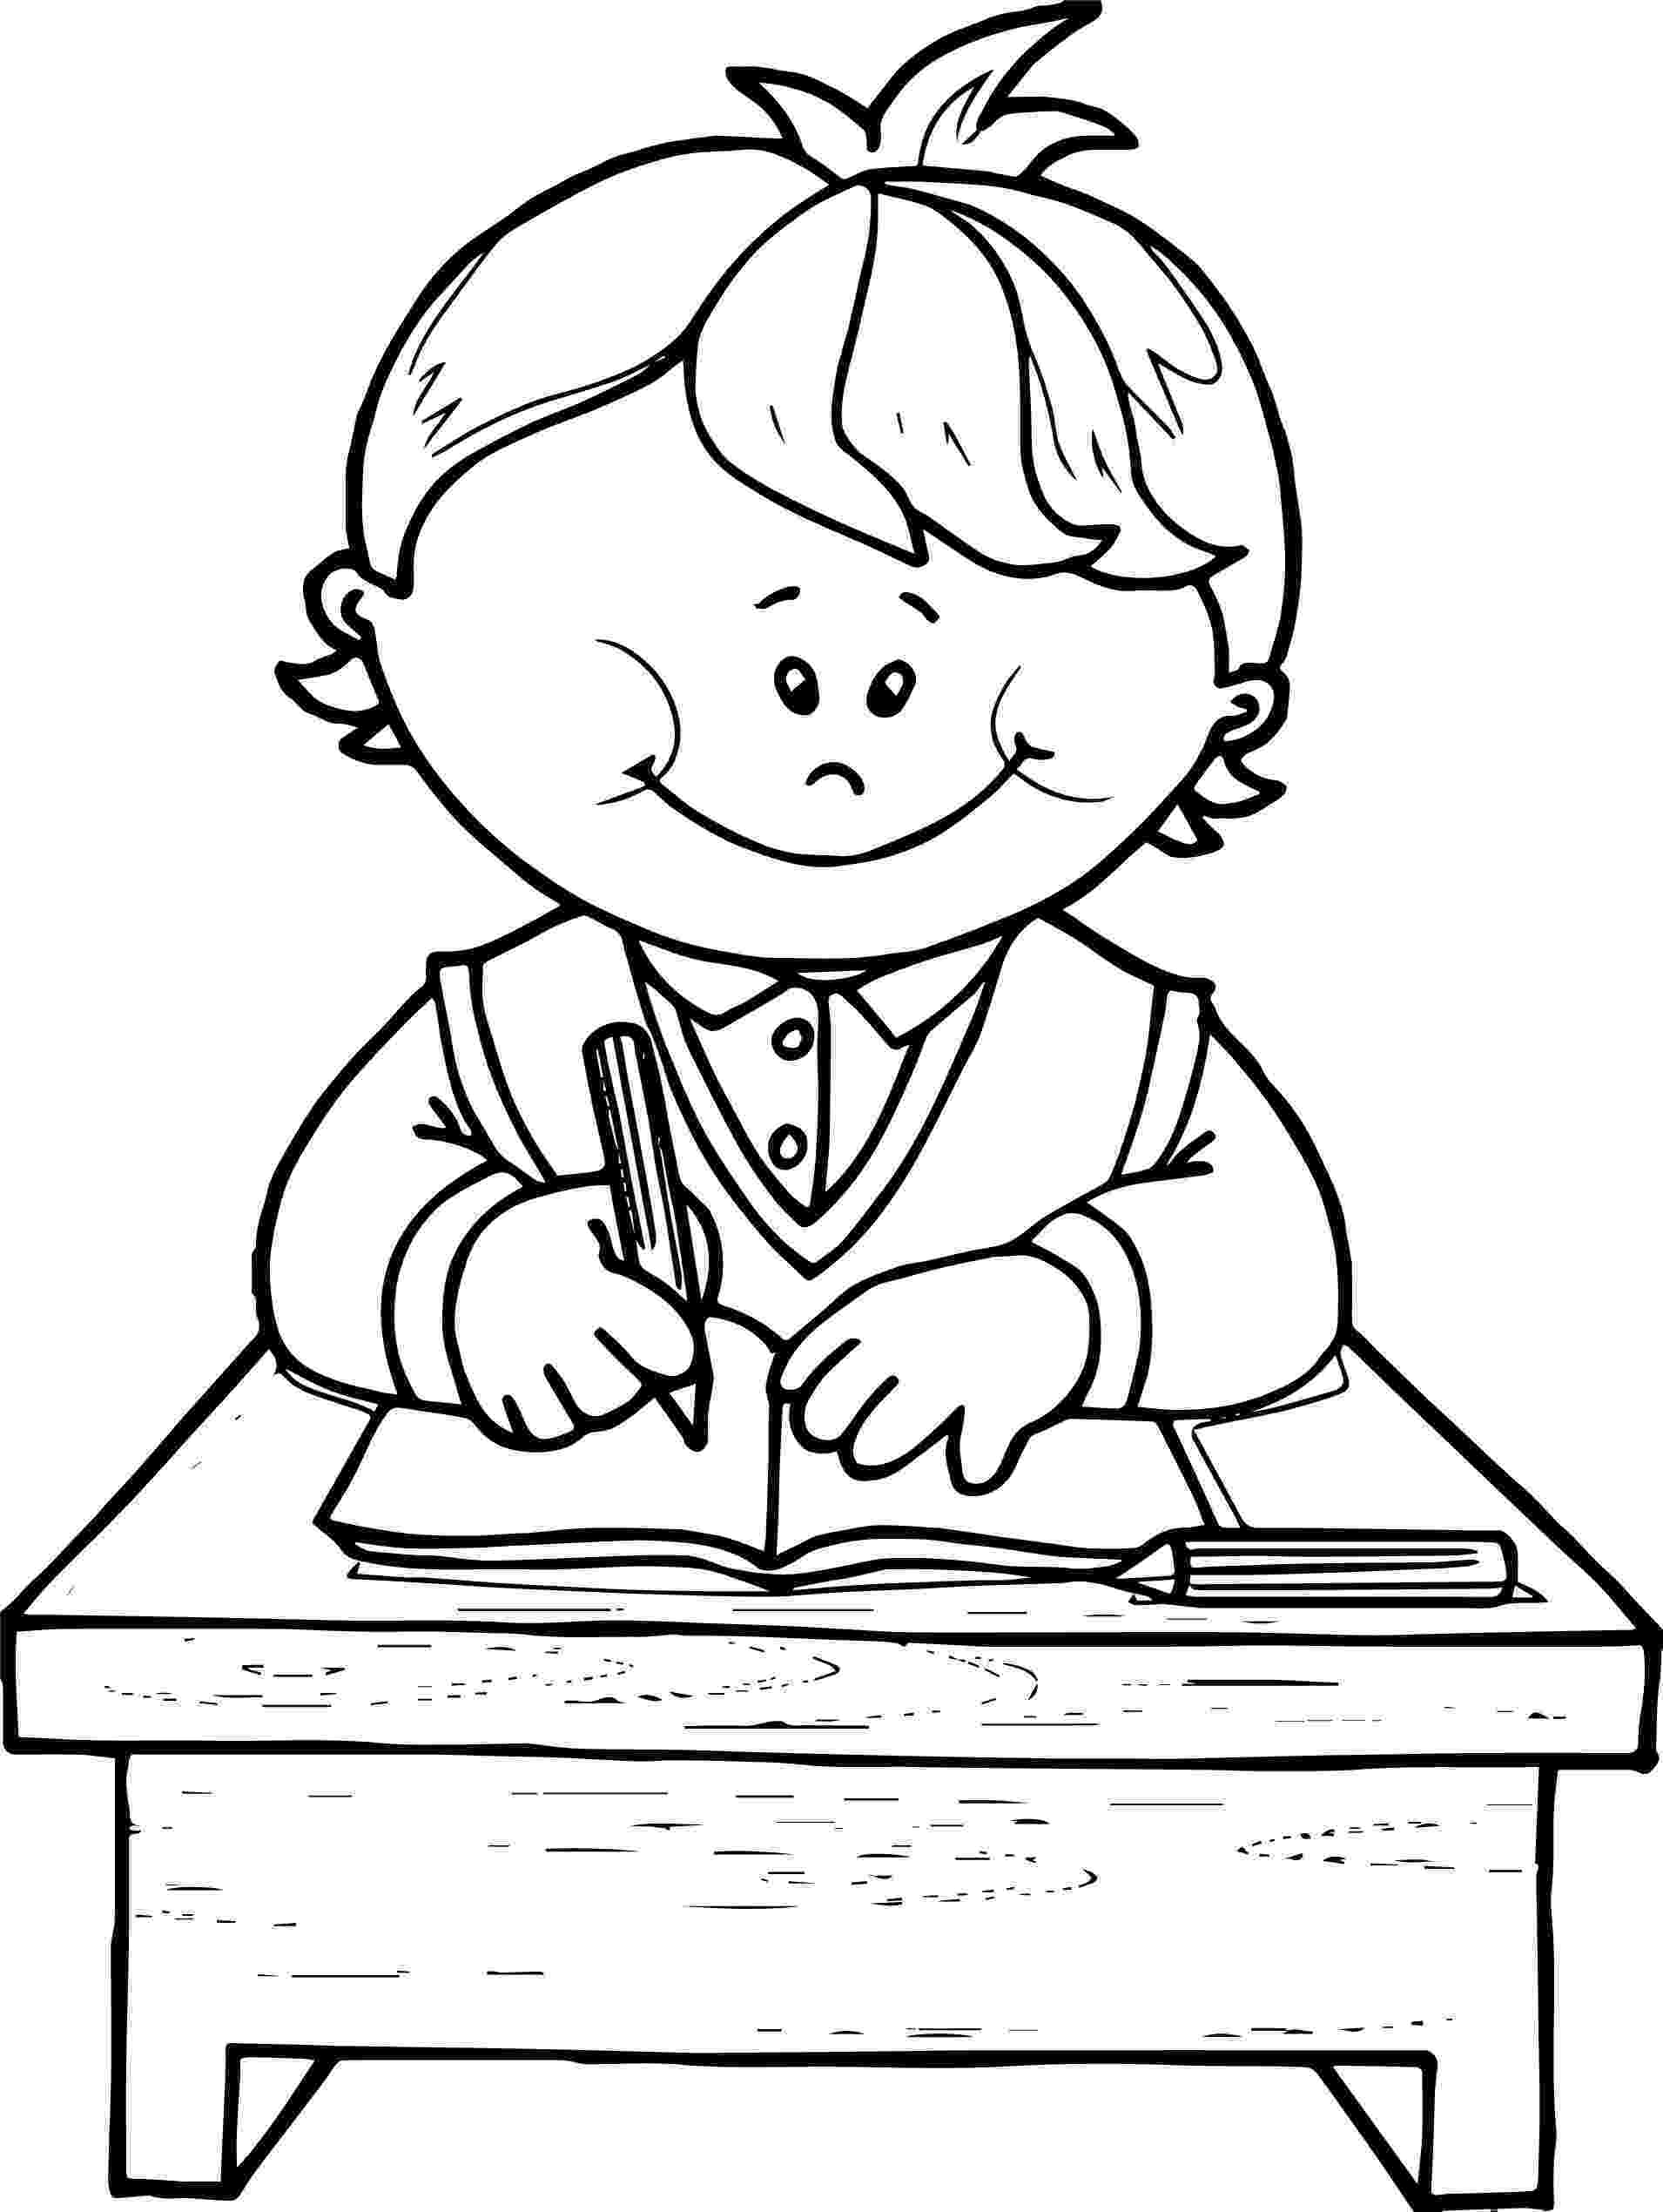 picture of a boy to color free printable baby coloring pages for kids to a color boy of picture